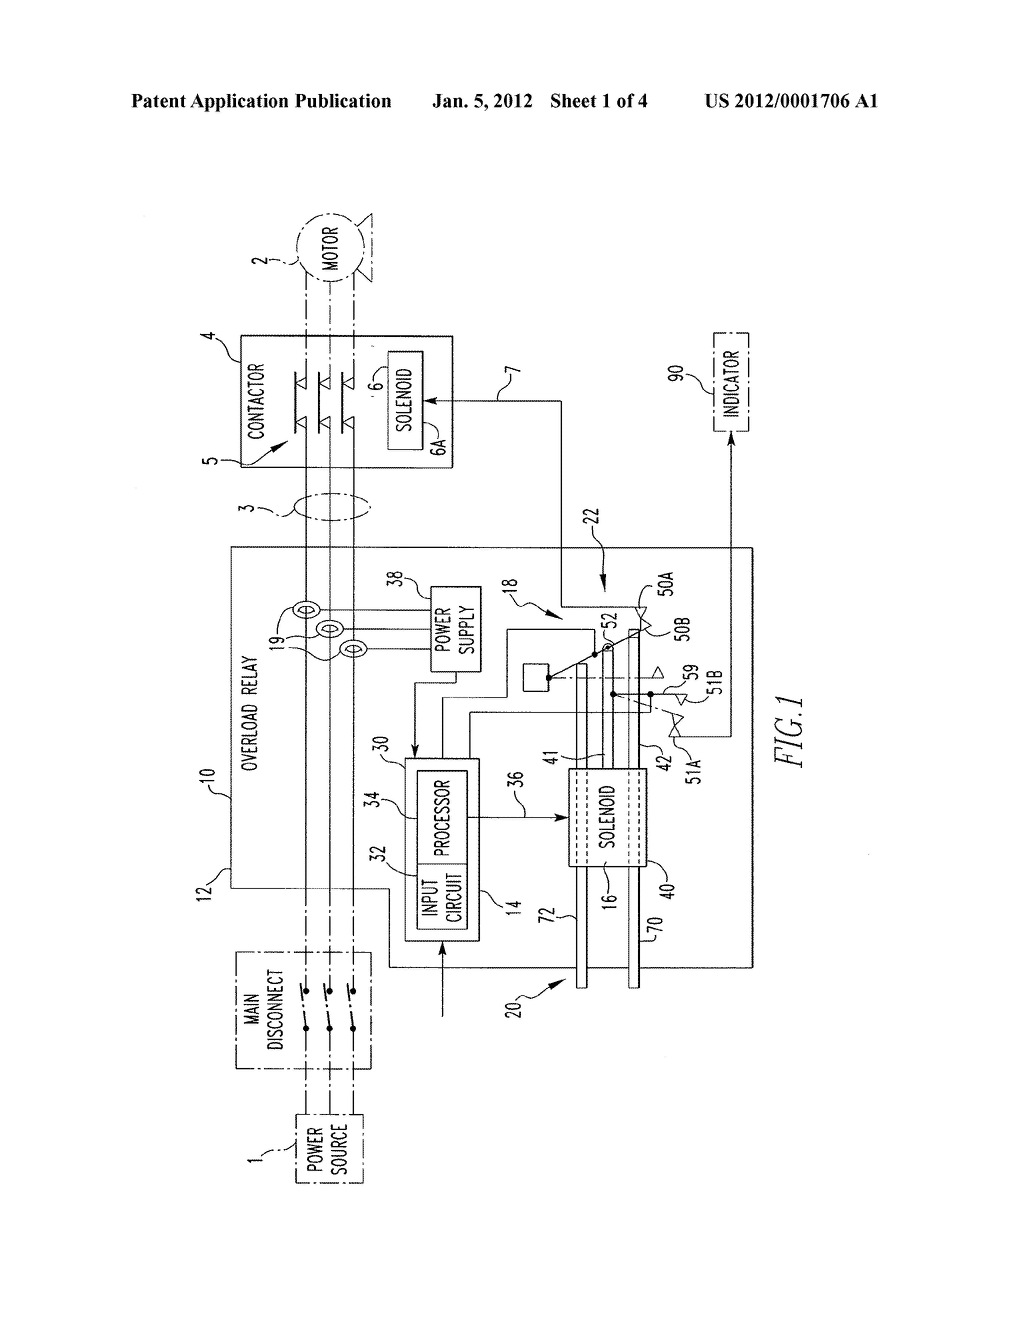 Electronic Overload Relay Switch Actuation Diagram Schematic And Circuit Image 02